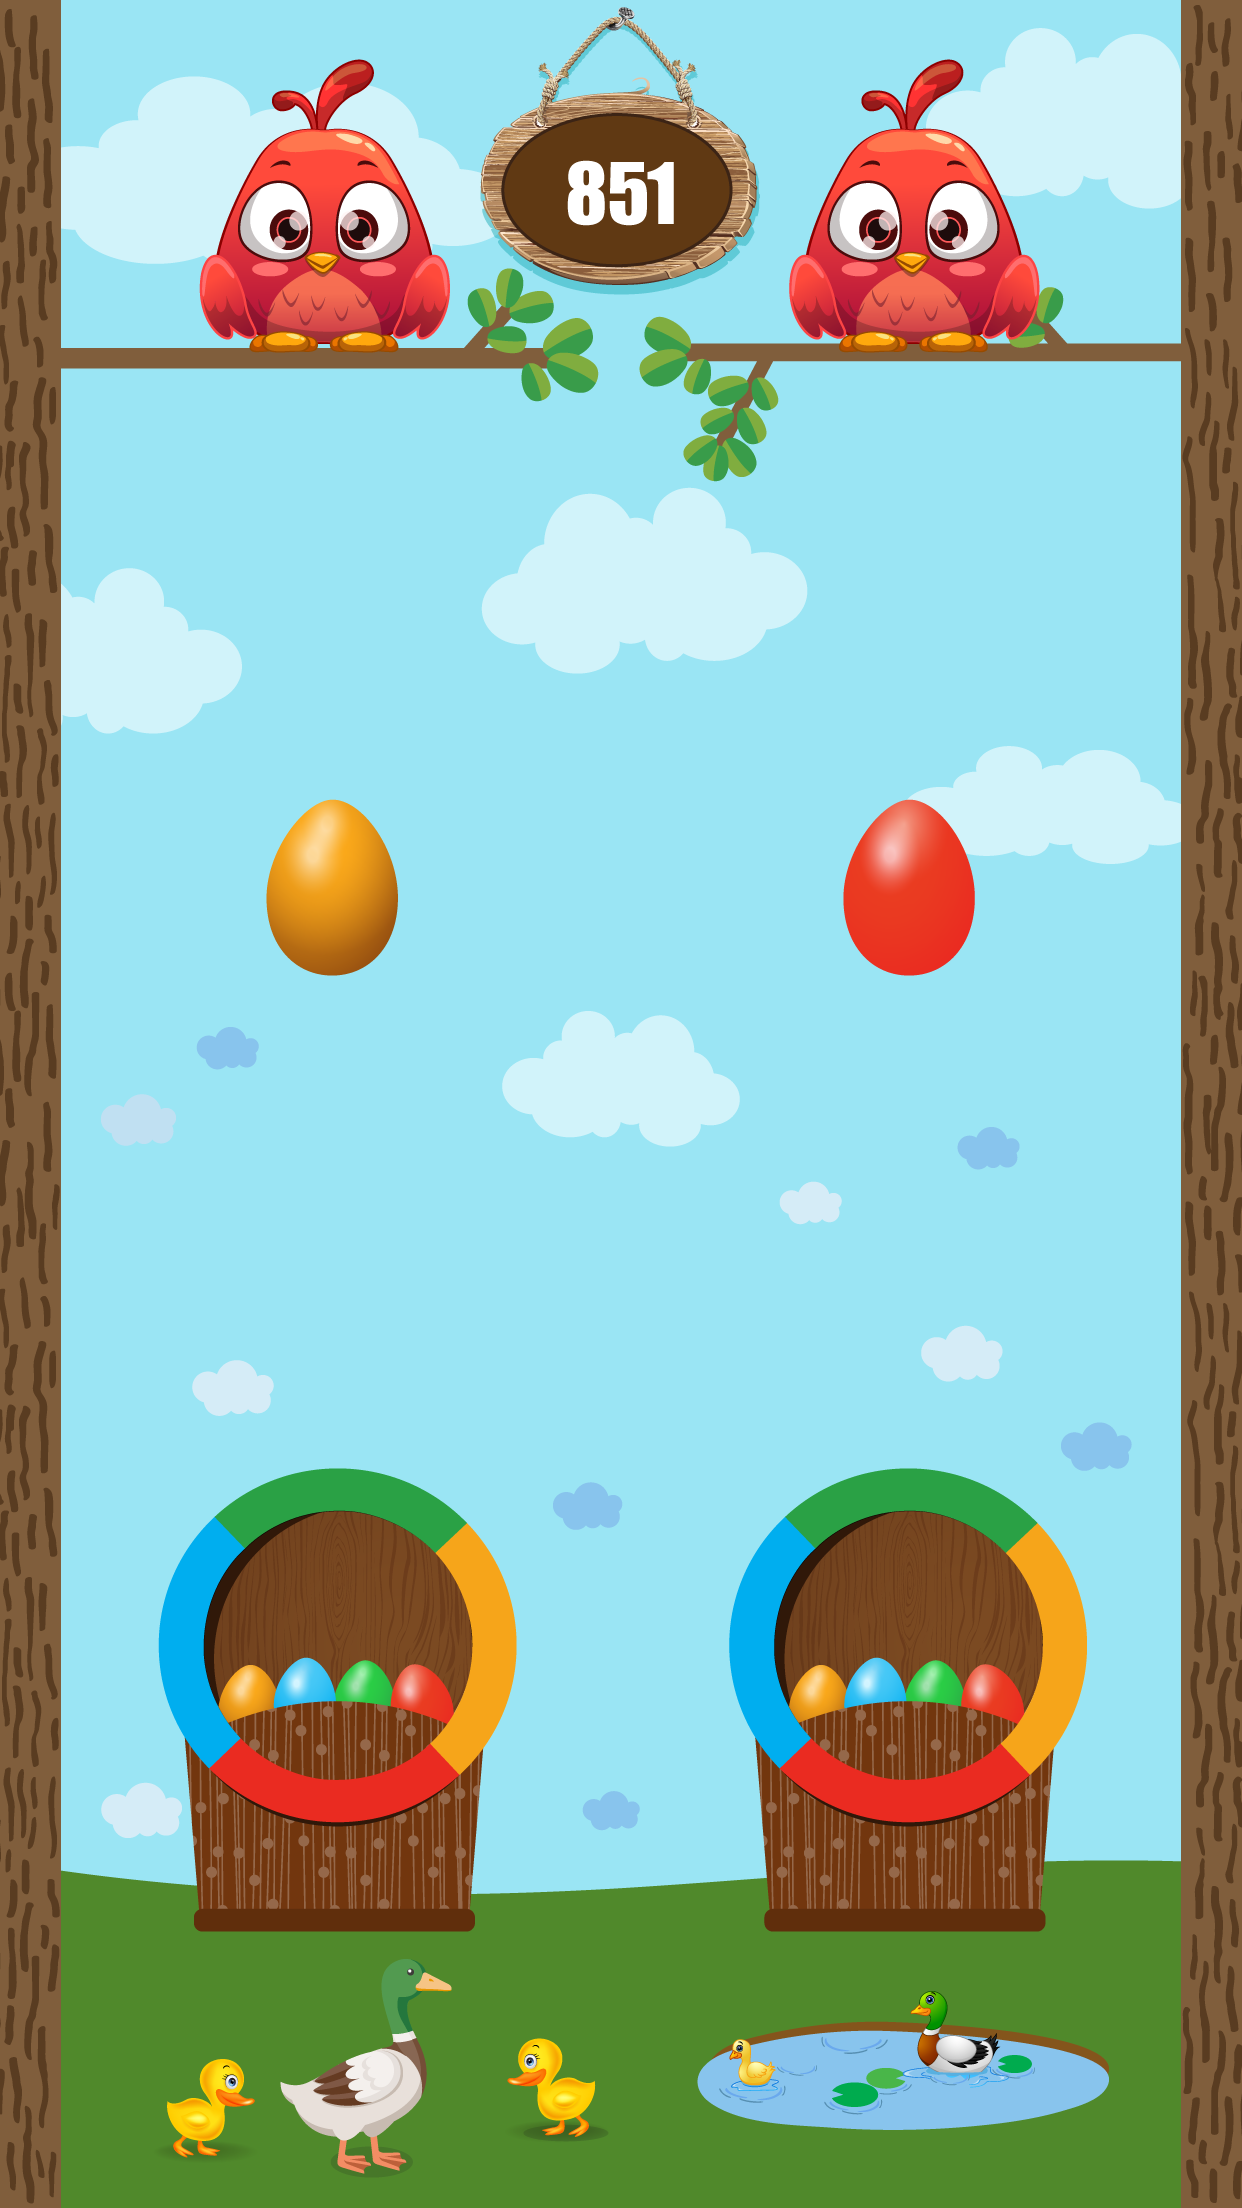 Egg Catch Challenge brain training puzzle game is great